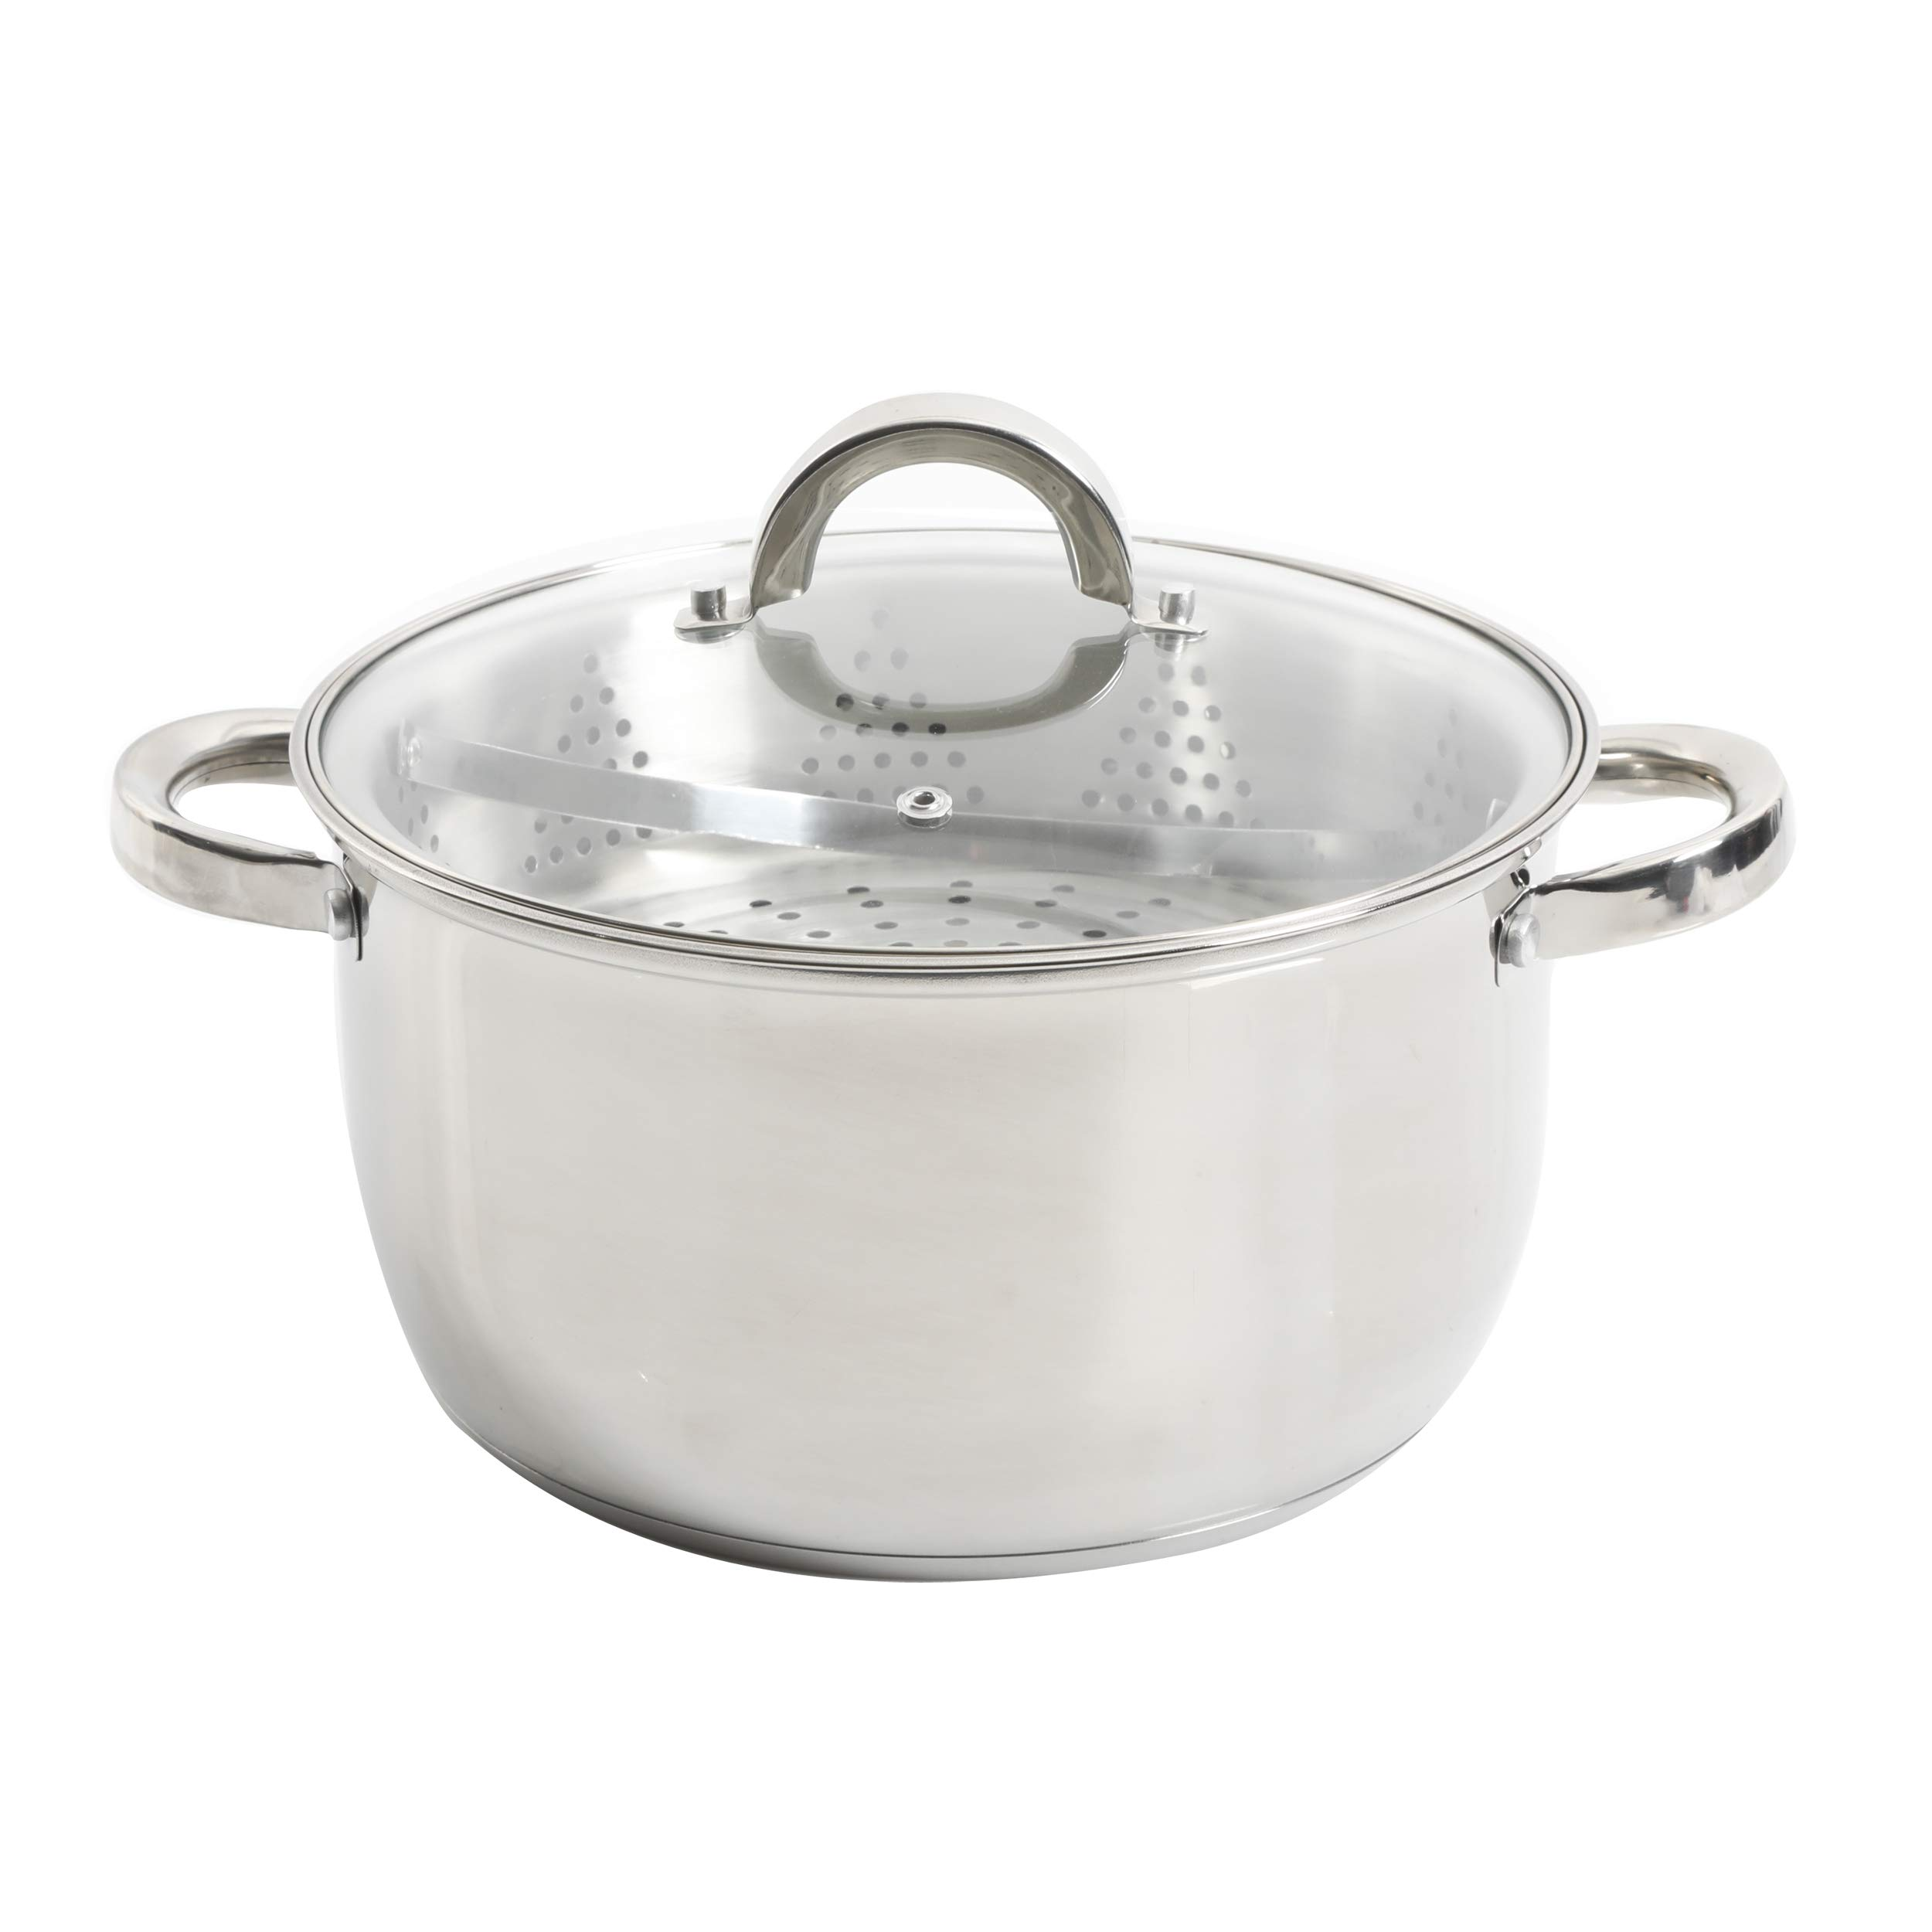 Amazon Com Oster Sangerfield 6 Qt Dutch Oven Casserole With Steamer Basket Stainless Steel Kitchen Dining